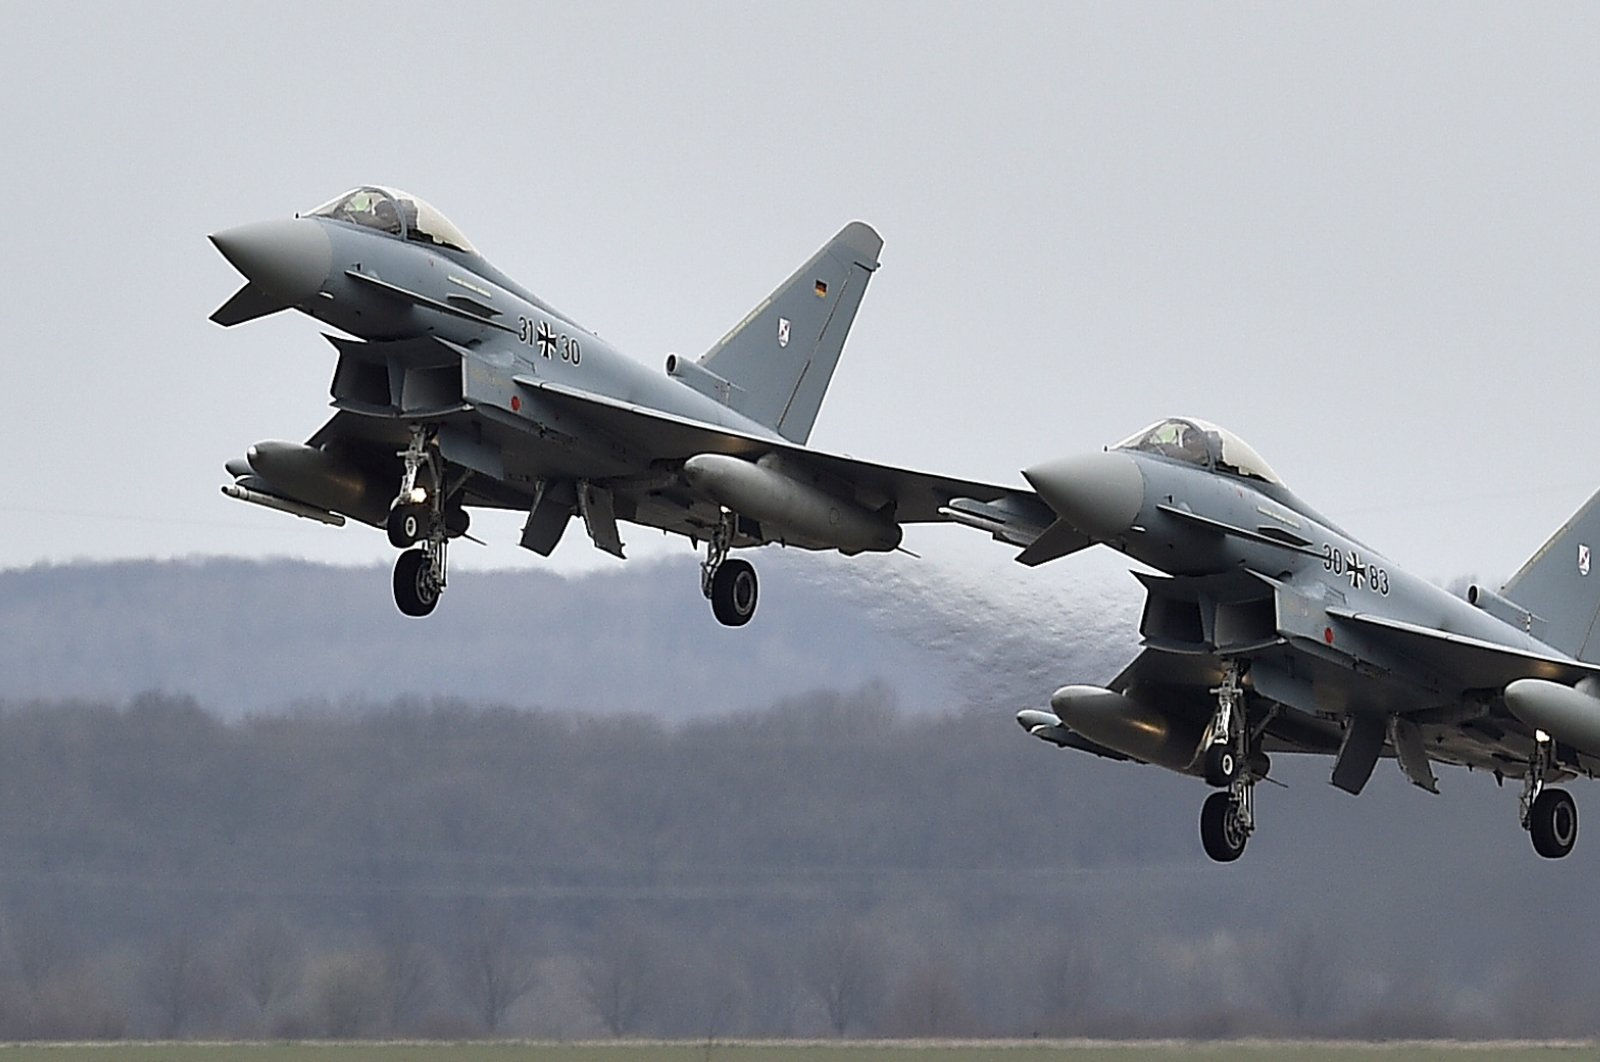 Two Eurofighter jets perform a fly by at the German Air Force Base in Noervenich, Germany, March 21, 2016. (AP Photo)